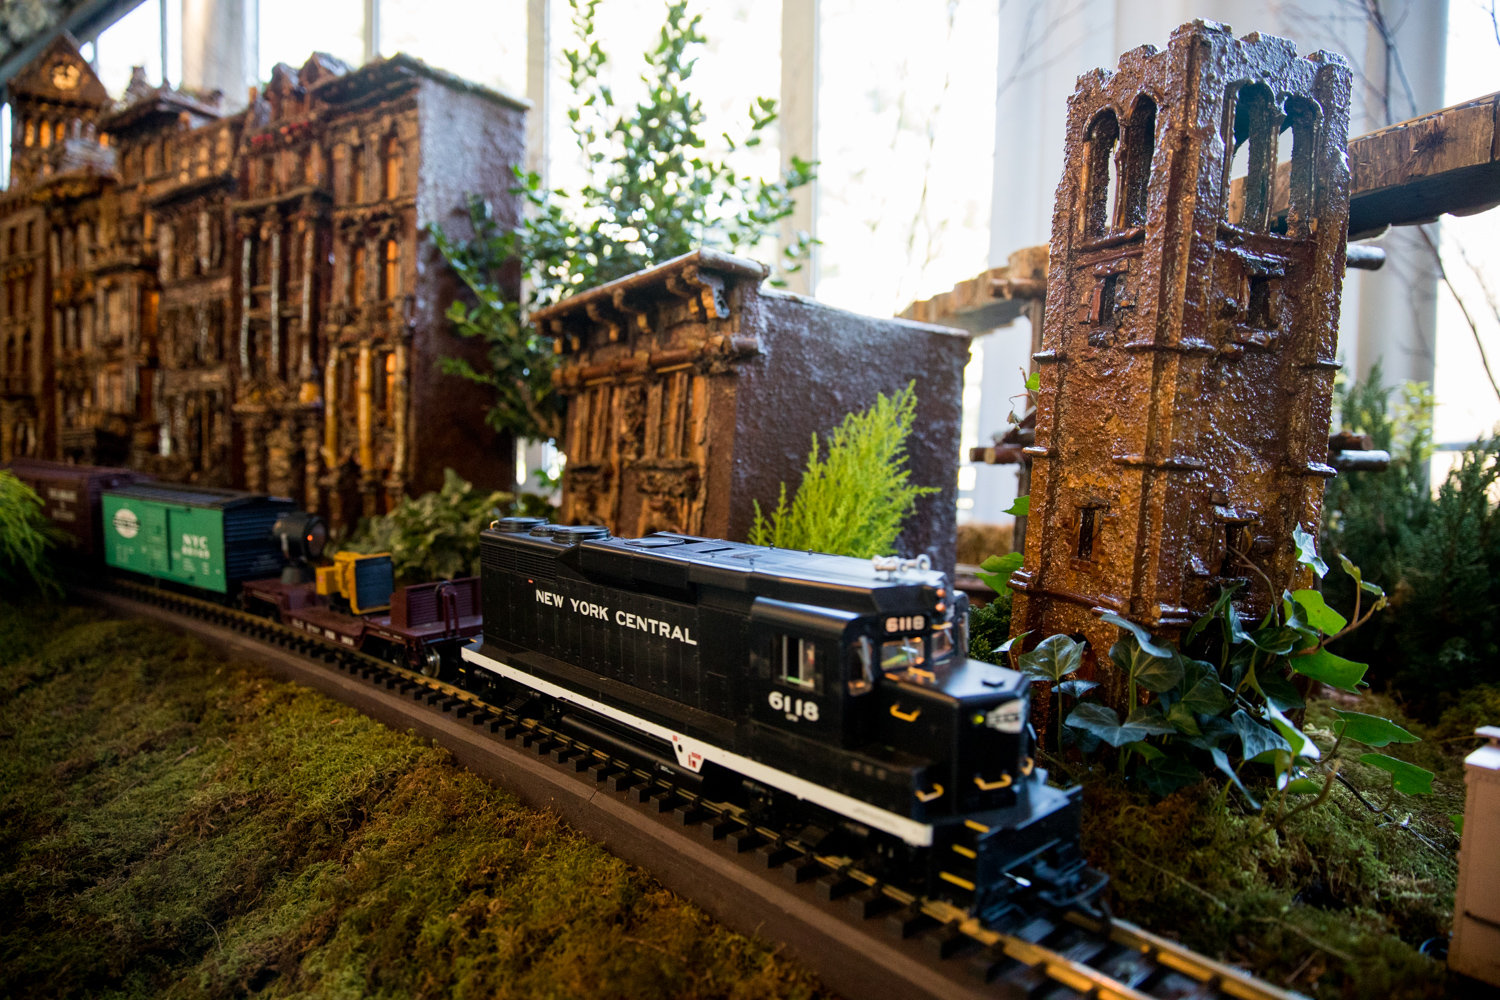 A model train rolls past the Riverdale Monument in the Bronx section of the Holiday Train Show at the New York Botanical Garden.